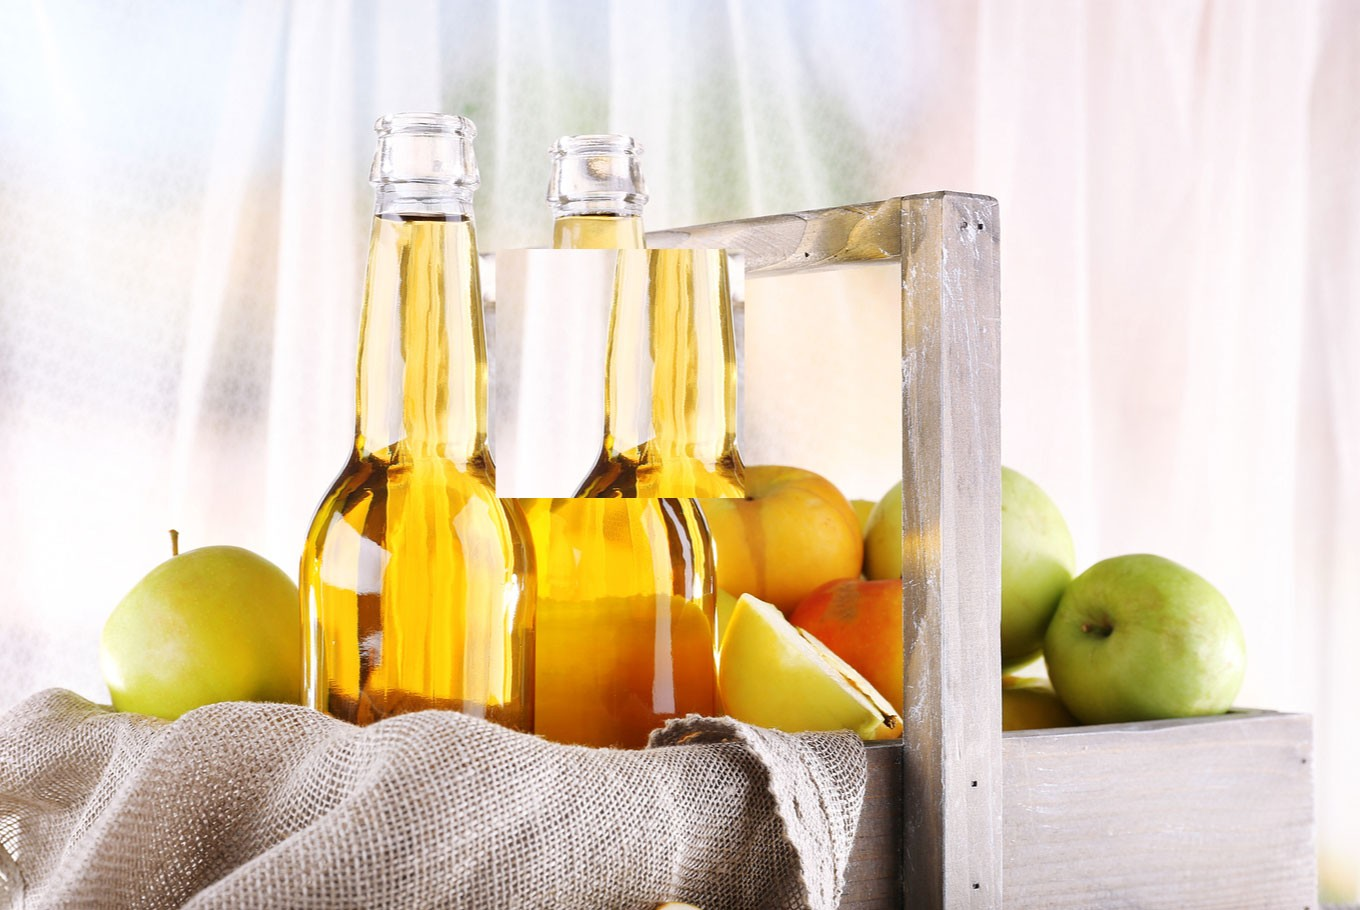 Apple cider vinegar diet: Does it really help you lose weight?